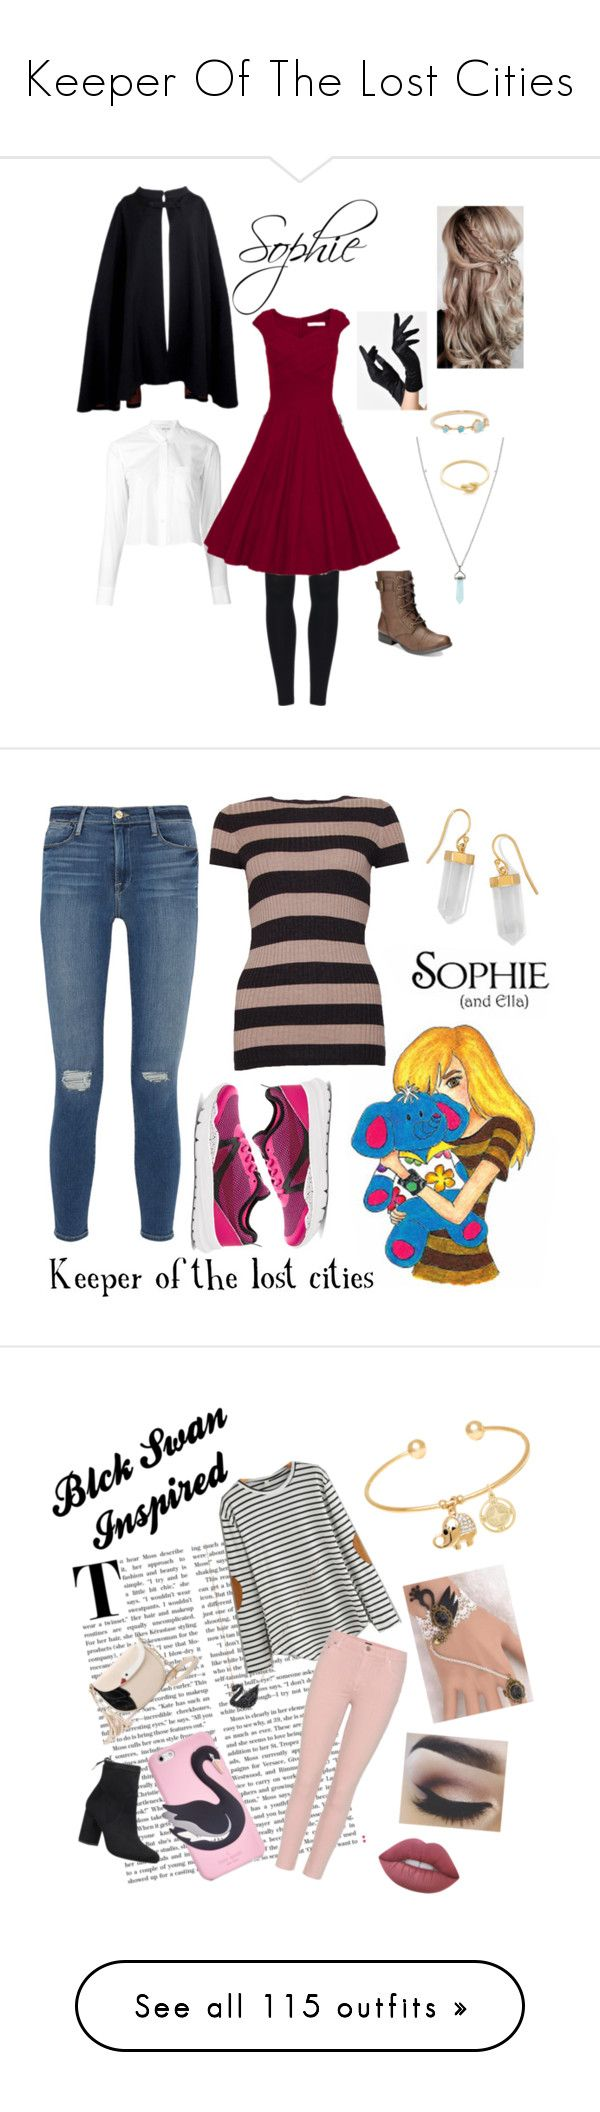 """""""Keeper Of The Lost Cities"""" by hyperducky ❤ liked on Polyvore featuring keeperofthelostcities, kotlc, sophiefoster, shannonmessenger, keefe, Helmut Lang, WithChic, Pierre Cardin, Hot Topic and American Rag Cie"""